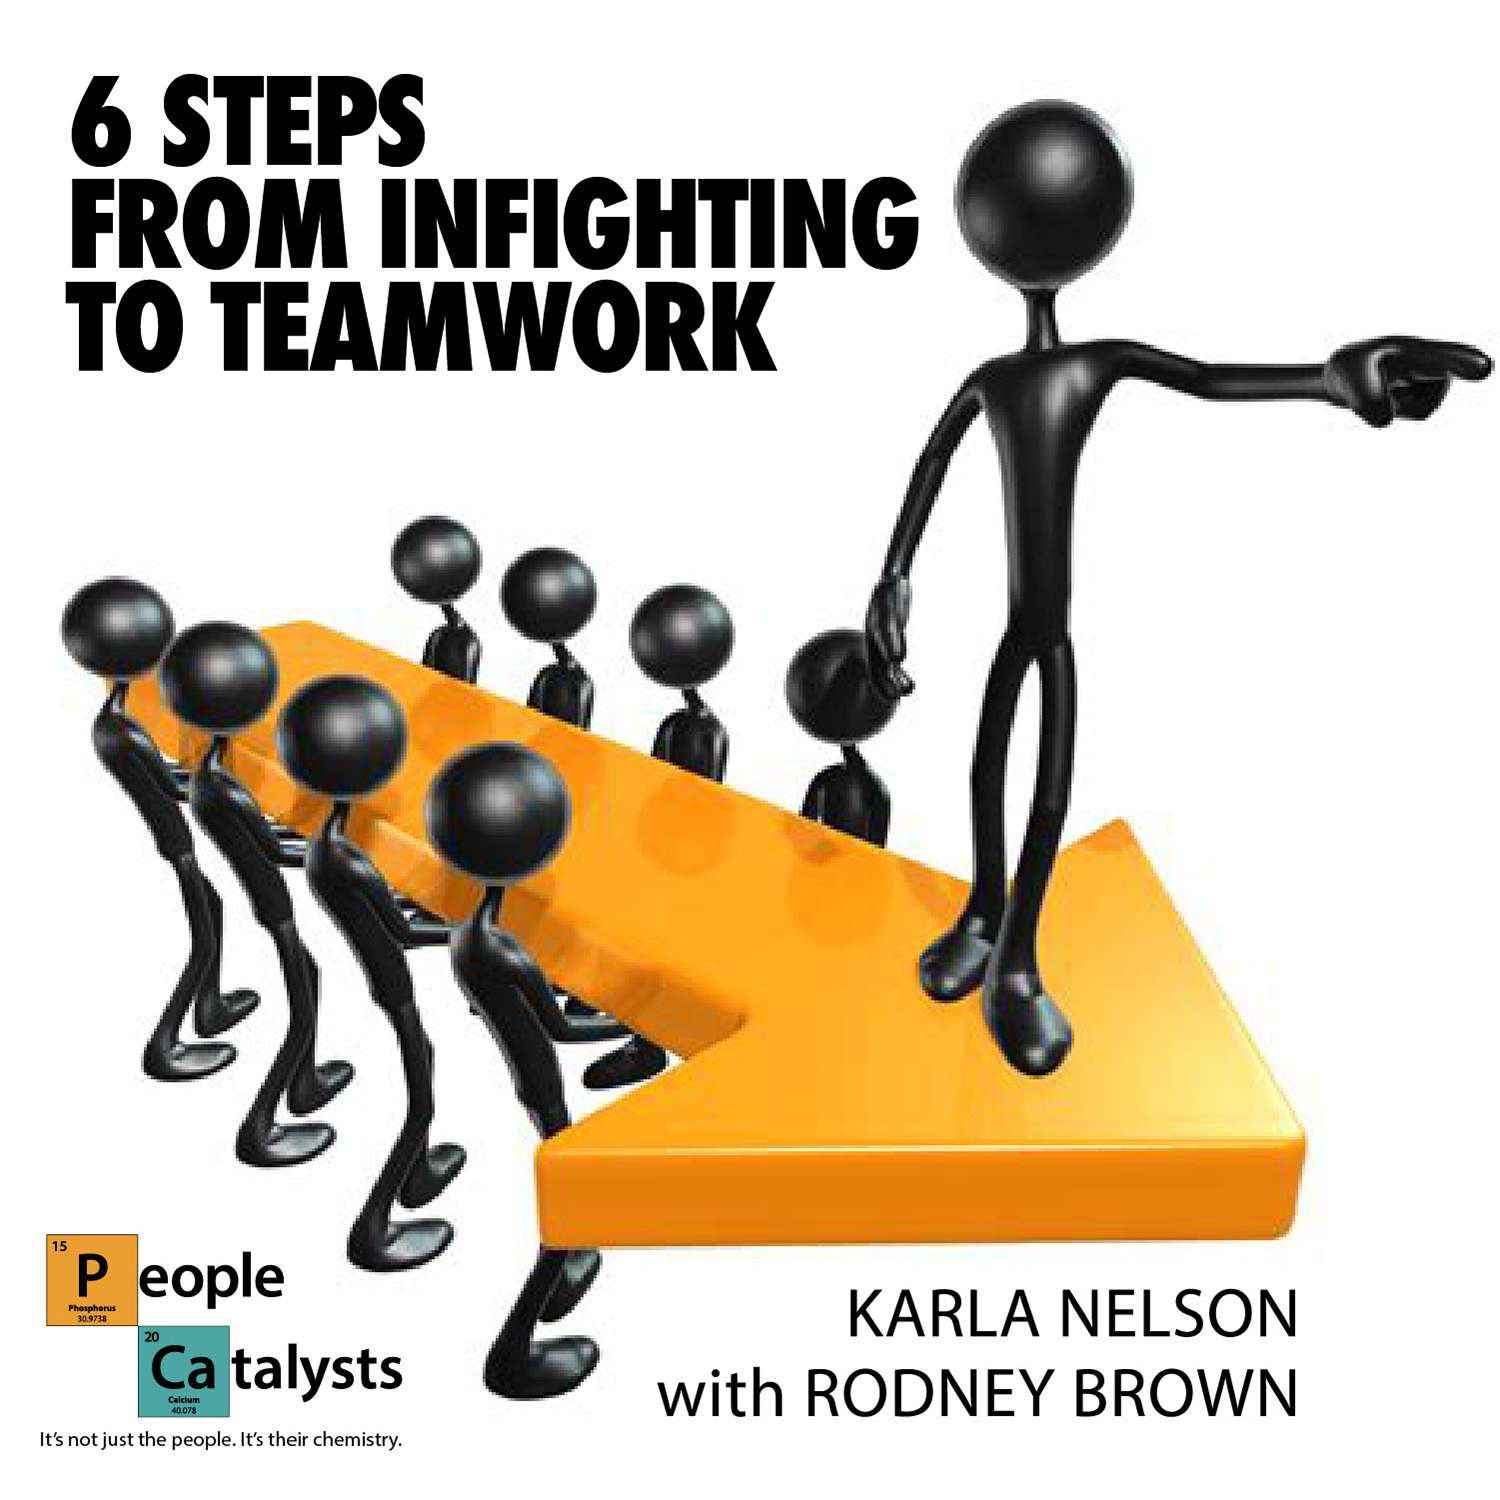 Text: 6 Steps from Infighting To Teamwork; Image of team supporting a leader on an arrow Text: Karla Nelson with Rodney Brown